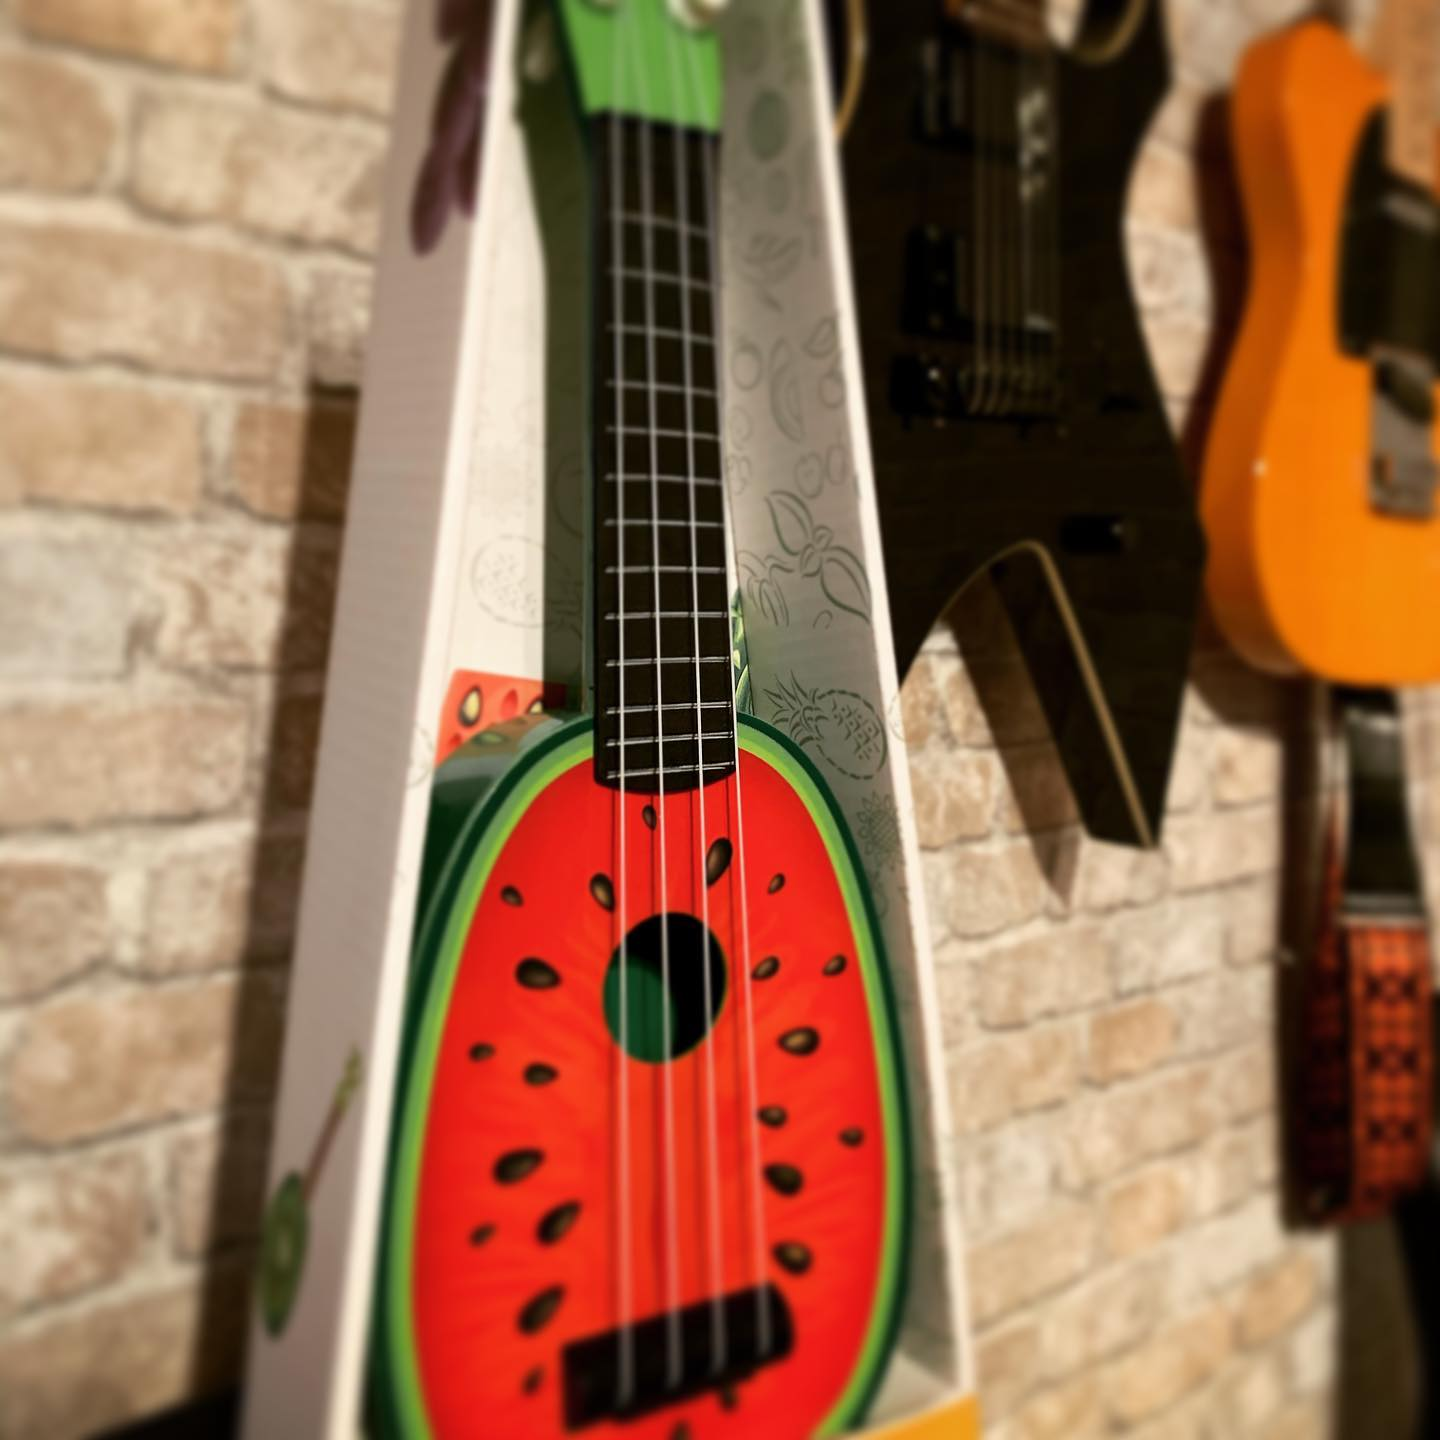 "Newest addition. Welcome to the family. Might be right instrument for Smashing Pumpkins ""Melon Collie and the infinite sadness? #badjokes #music #bremermoment #ukulele #haveagreatevening"